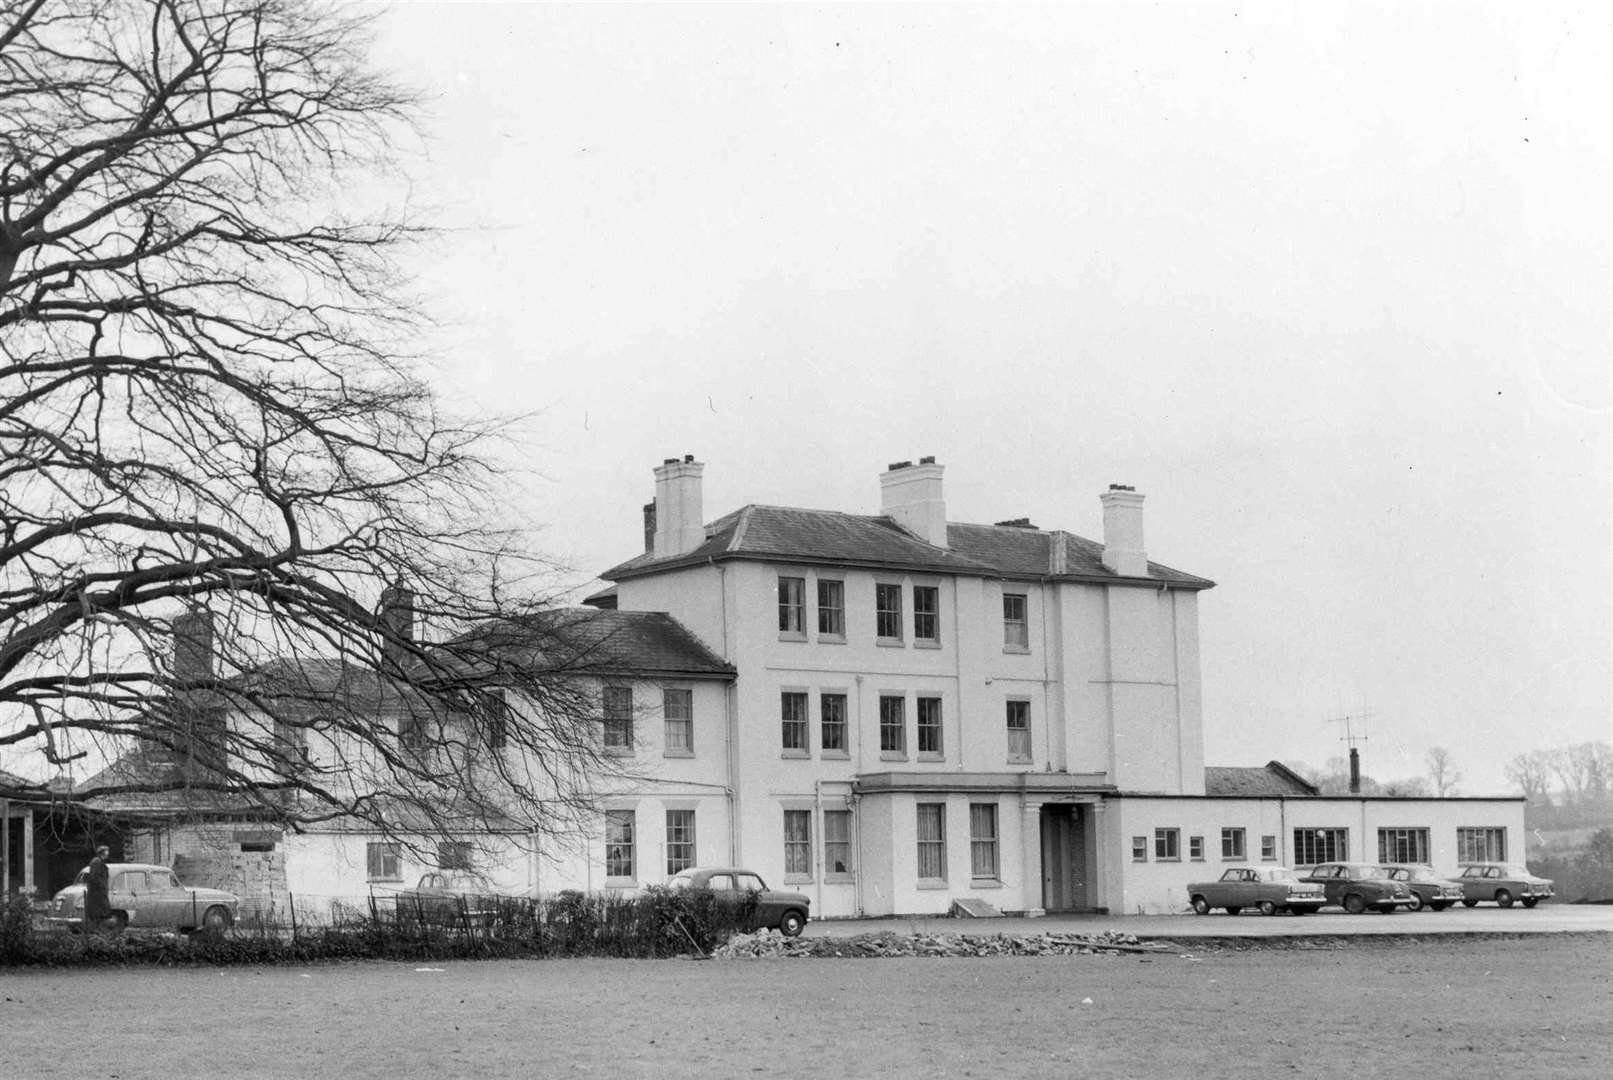 The Great Danes Hotel, at Hollingbourne, in 1962 before it was extensively developed. Picture: Images of Maidstone